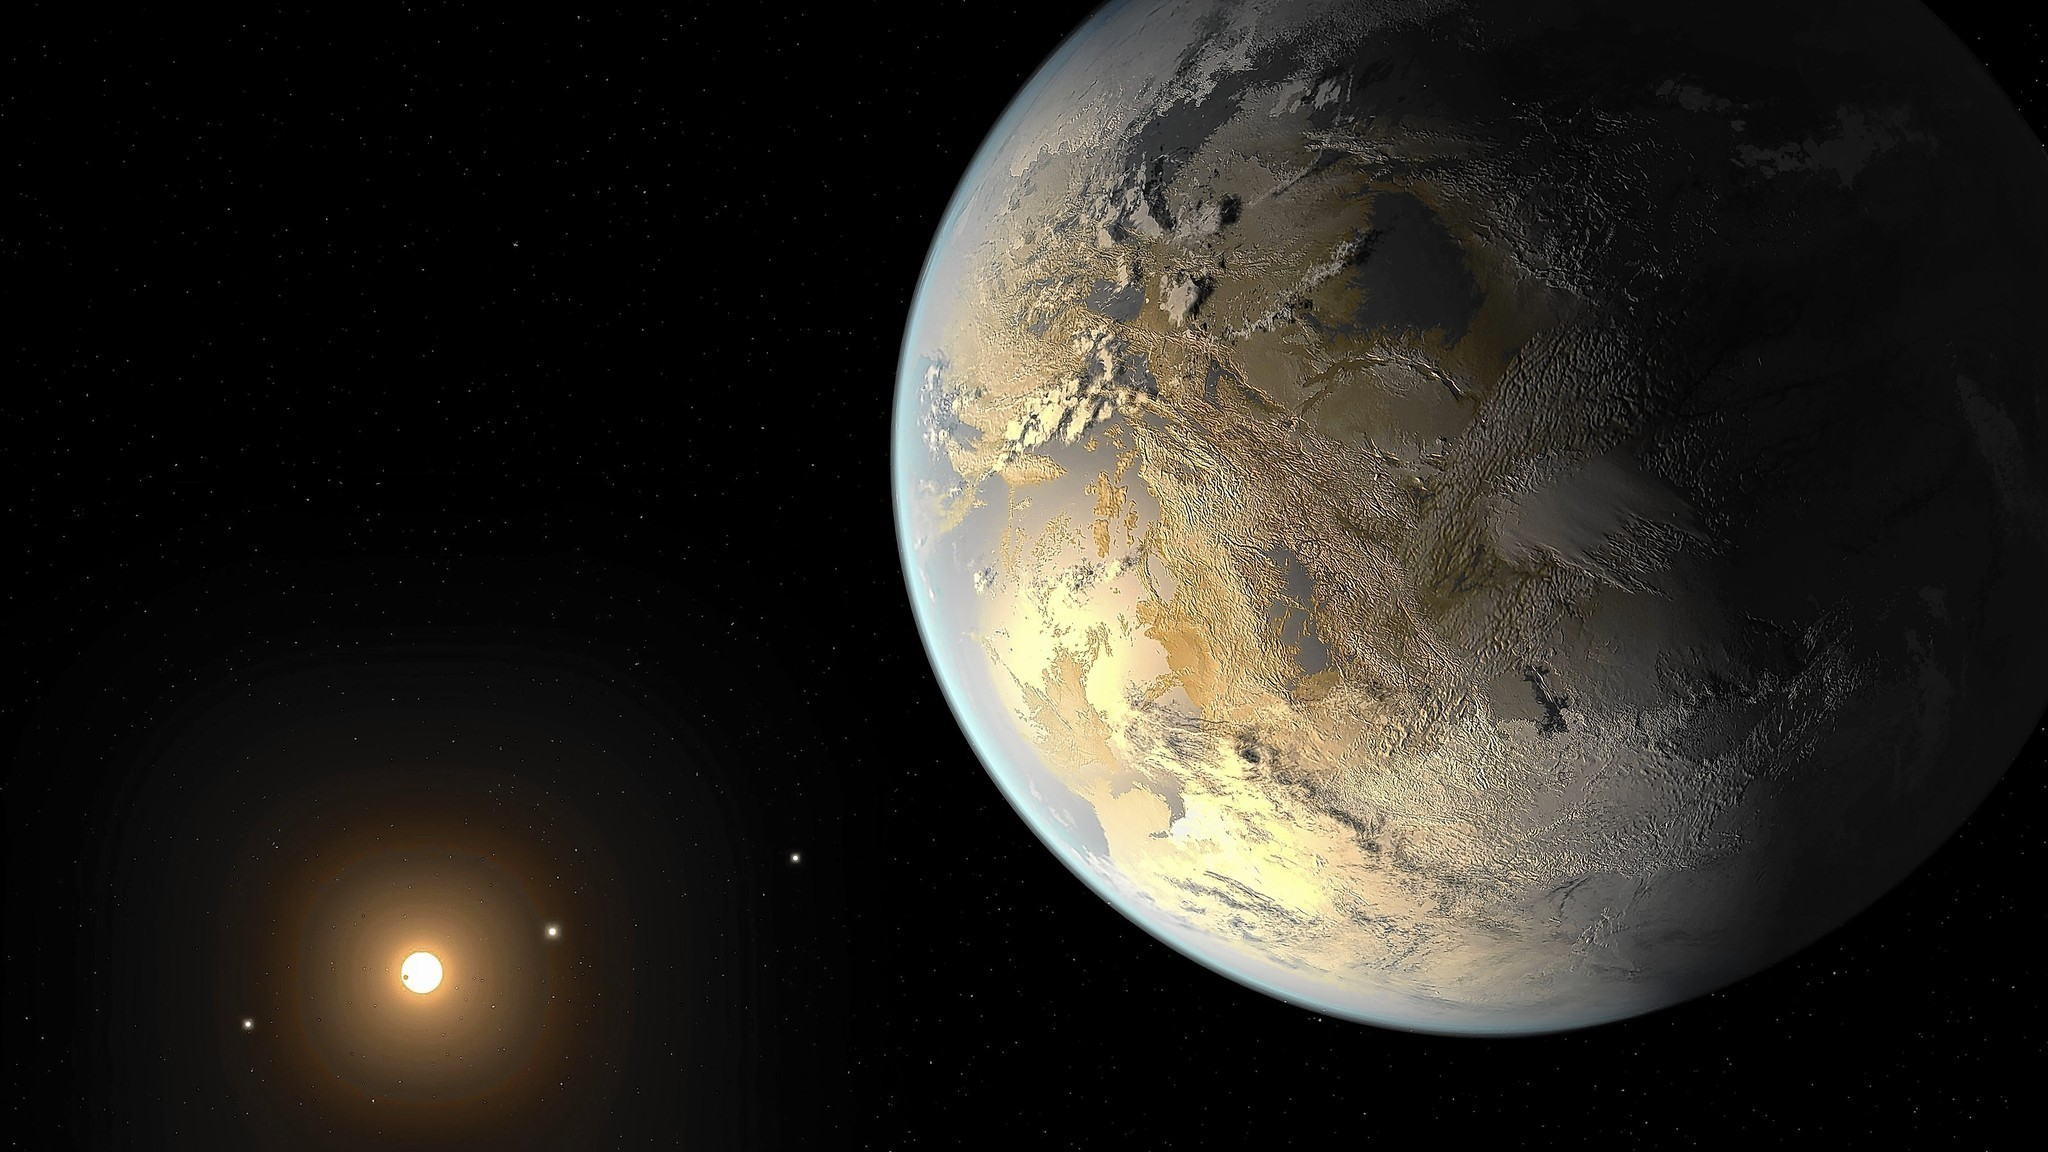 earth sized planets - photo #13